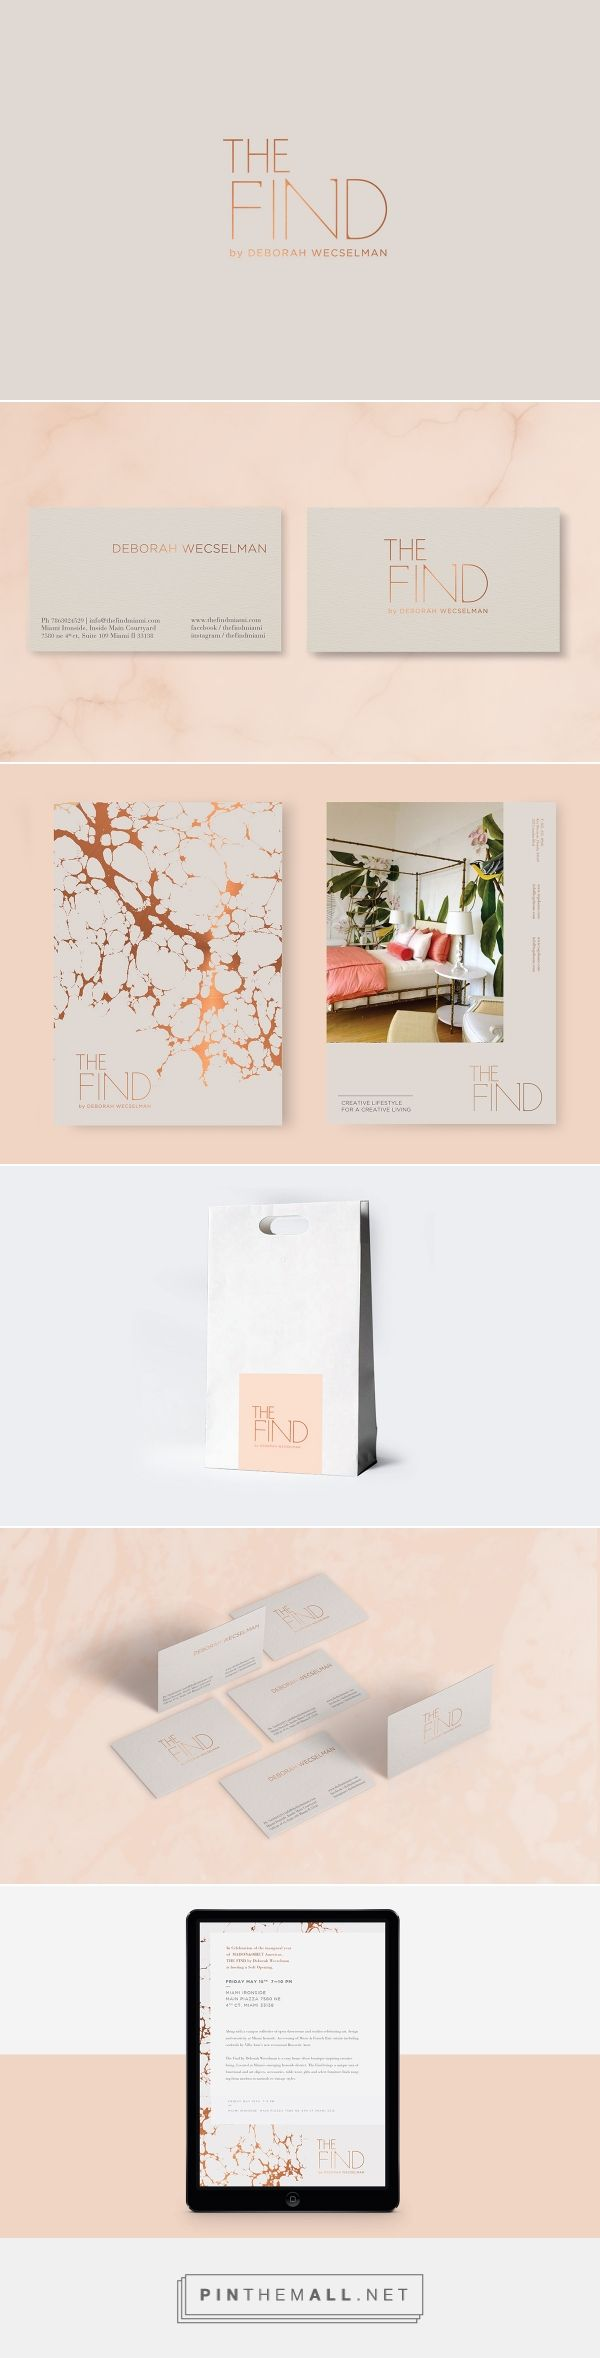 The Find Branding by Bunker3022 | Fivestar Branding Agency – Design and Branding Agency & Inspiration Gallery